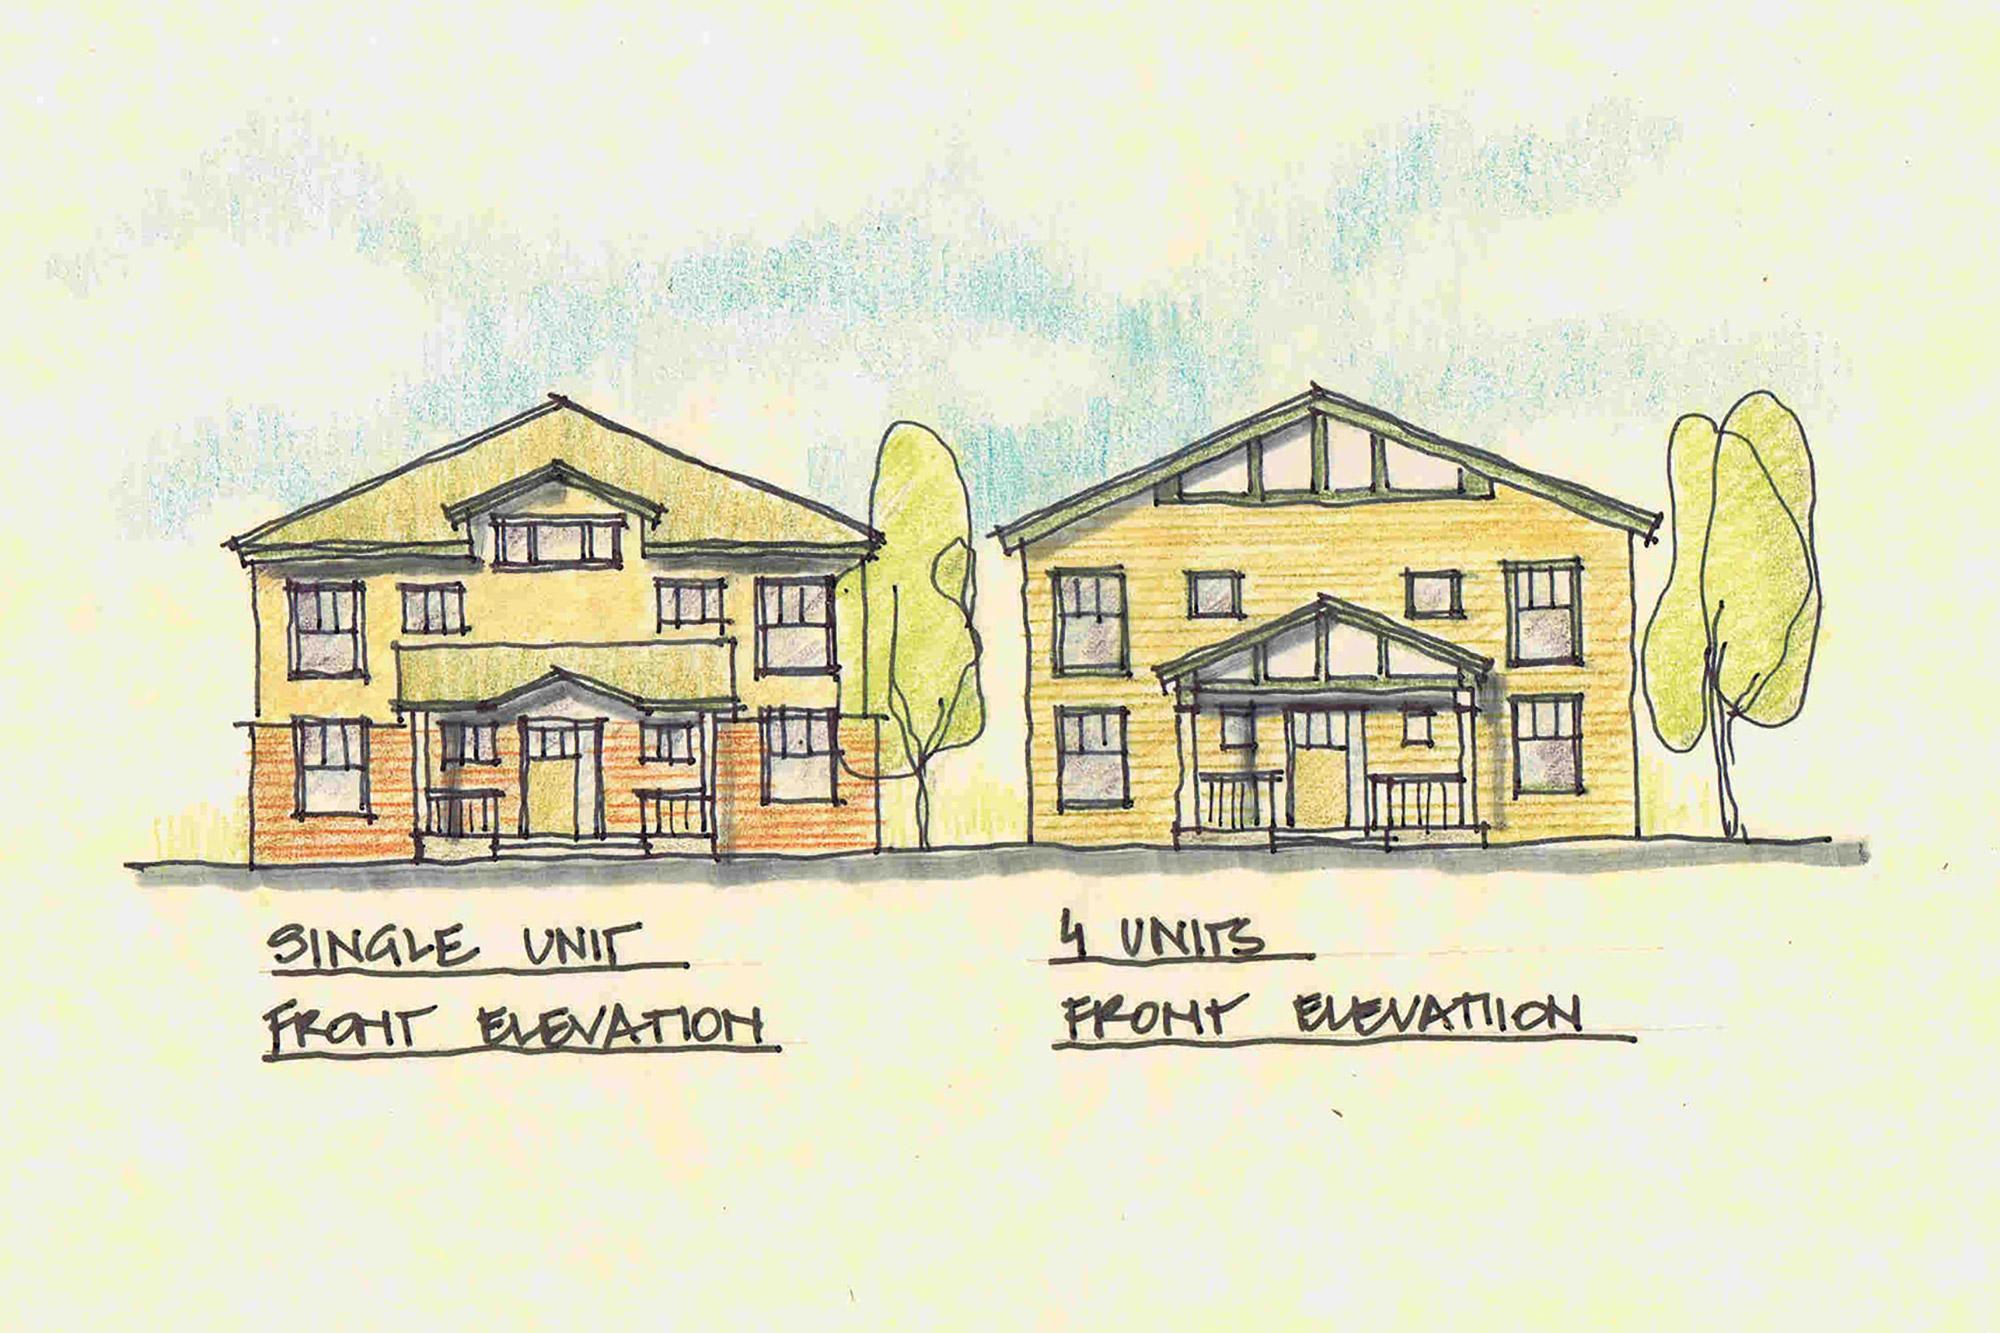 Denver's Residential Neighborhoods—Who Are They For?